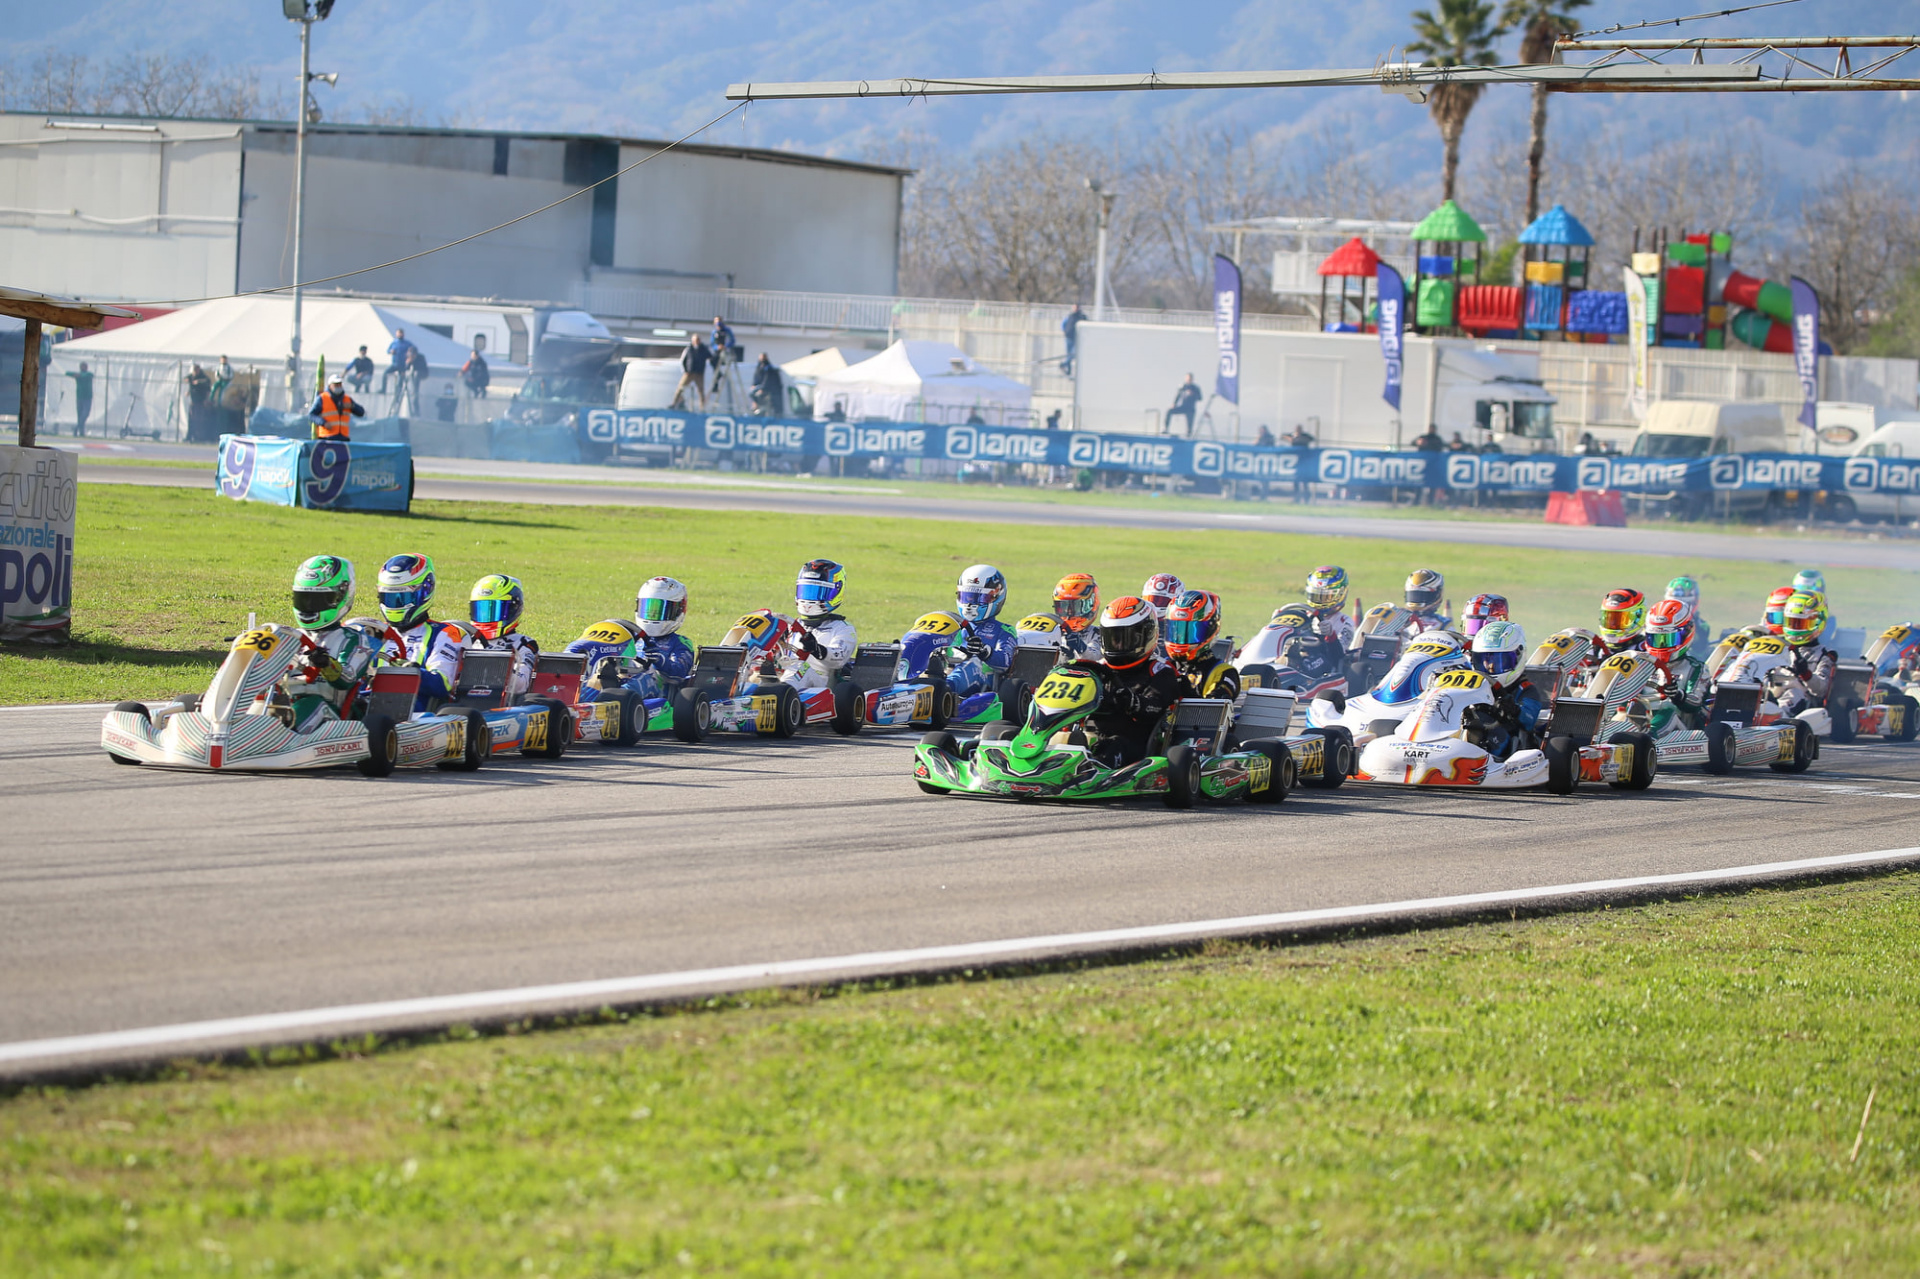 Gamoto Kart ends the season with a podium at the Trofeo Senna